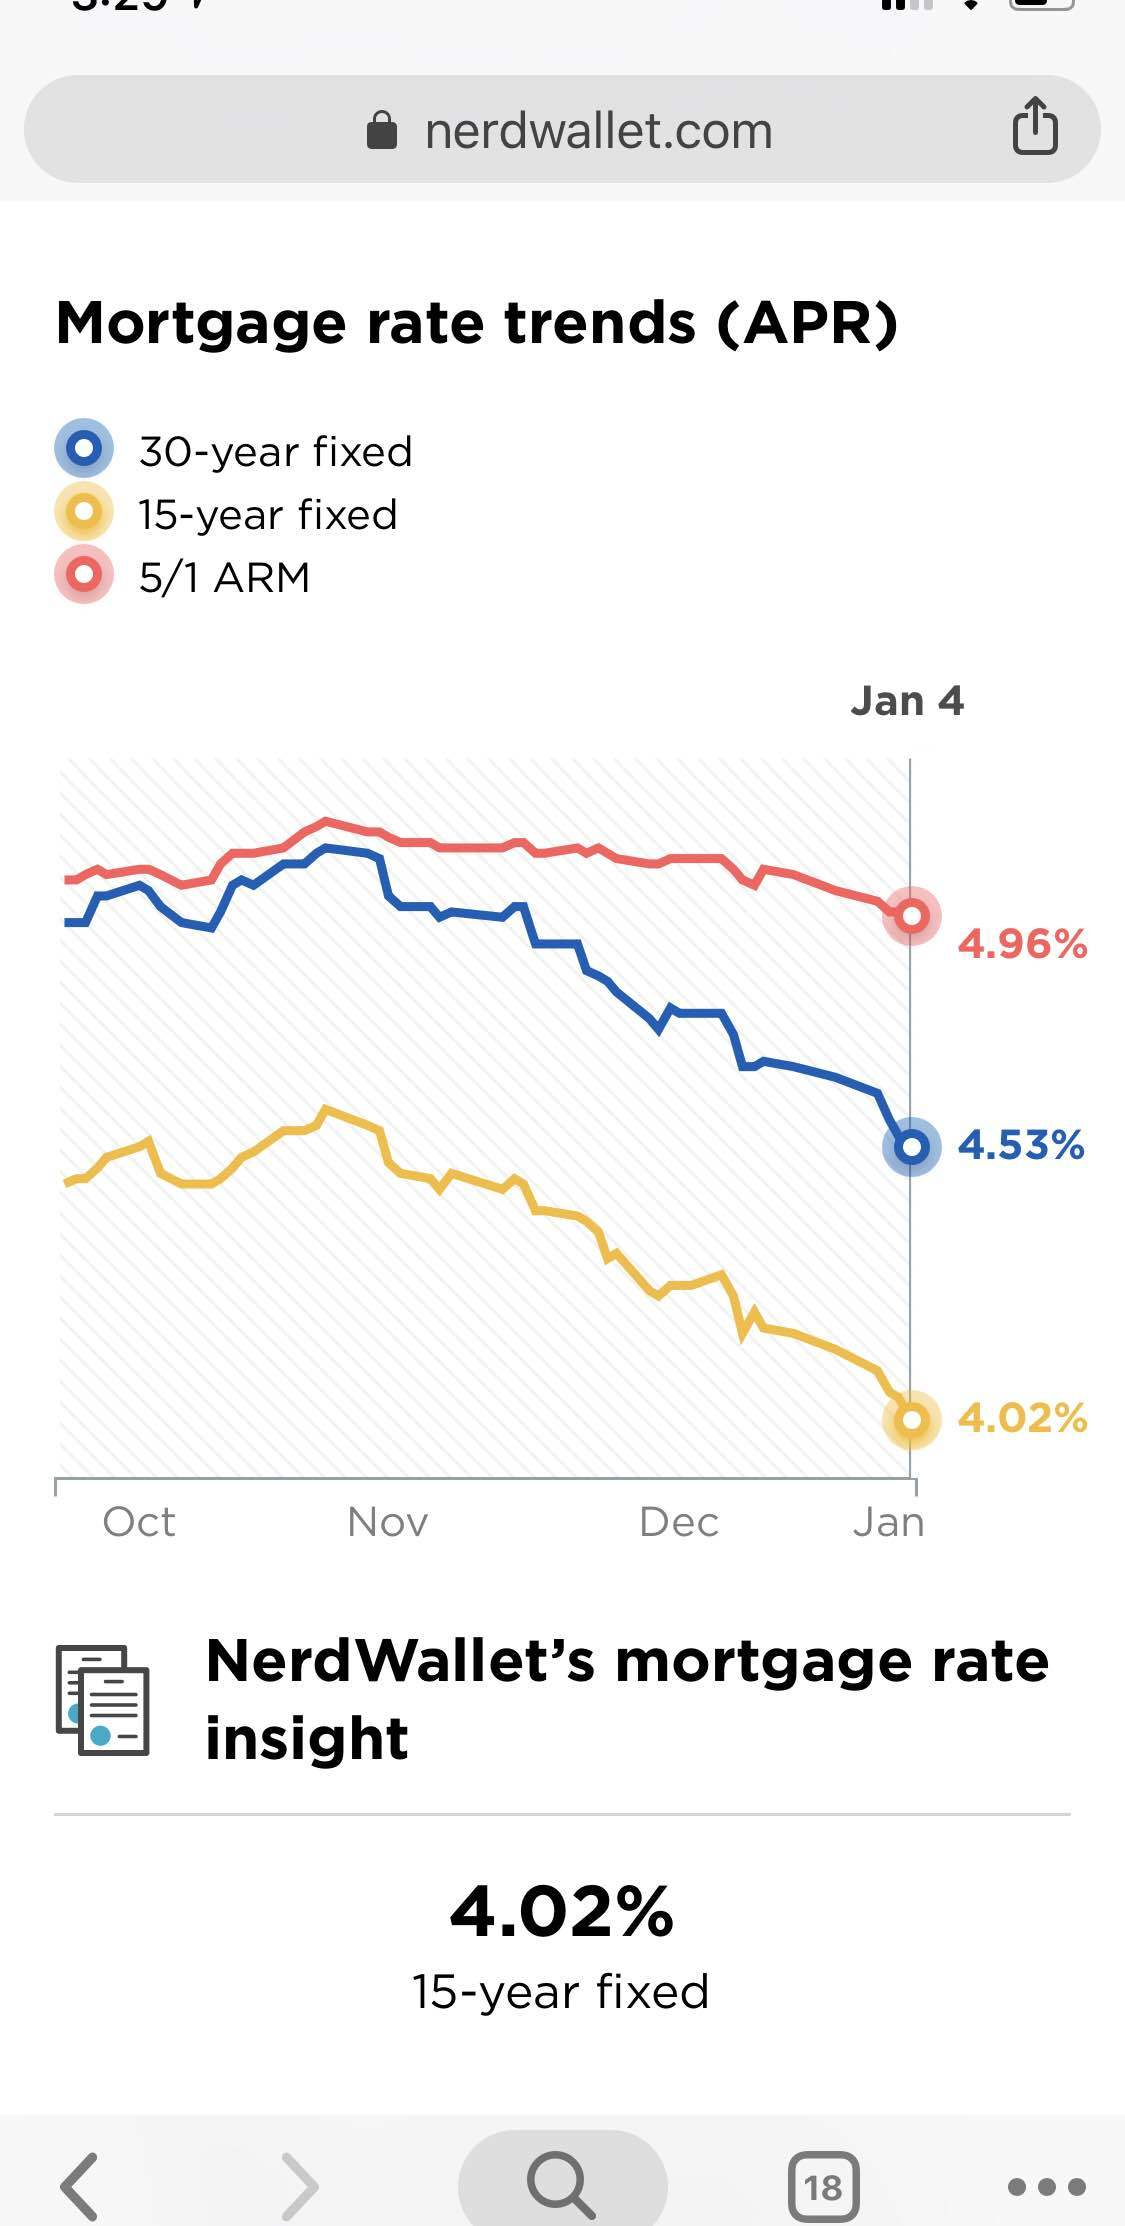 Mortgage rates going down